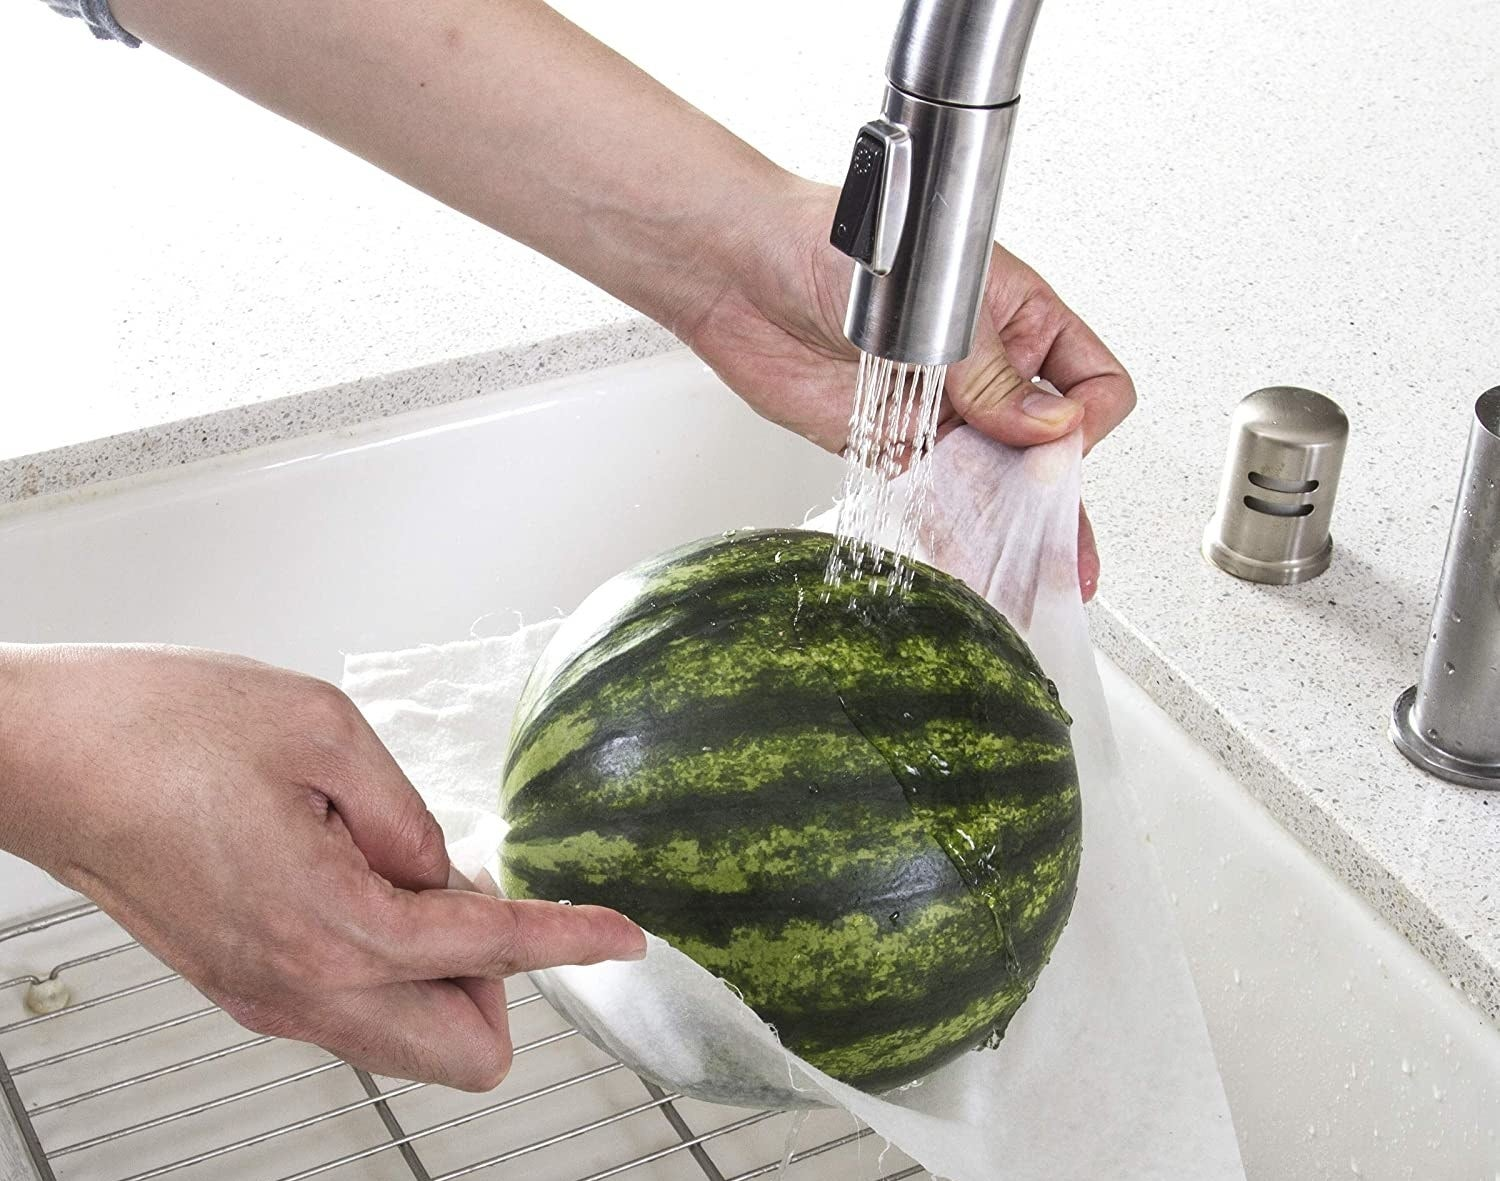 Model's hands holding a small watermelon in bamboo towel under running water